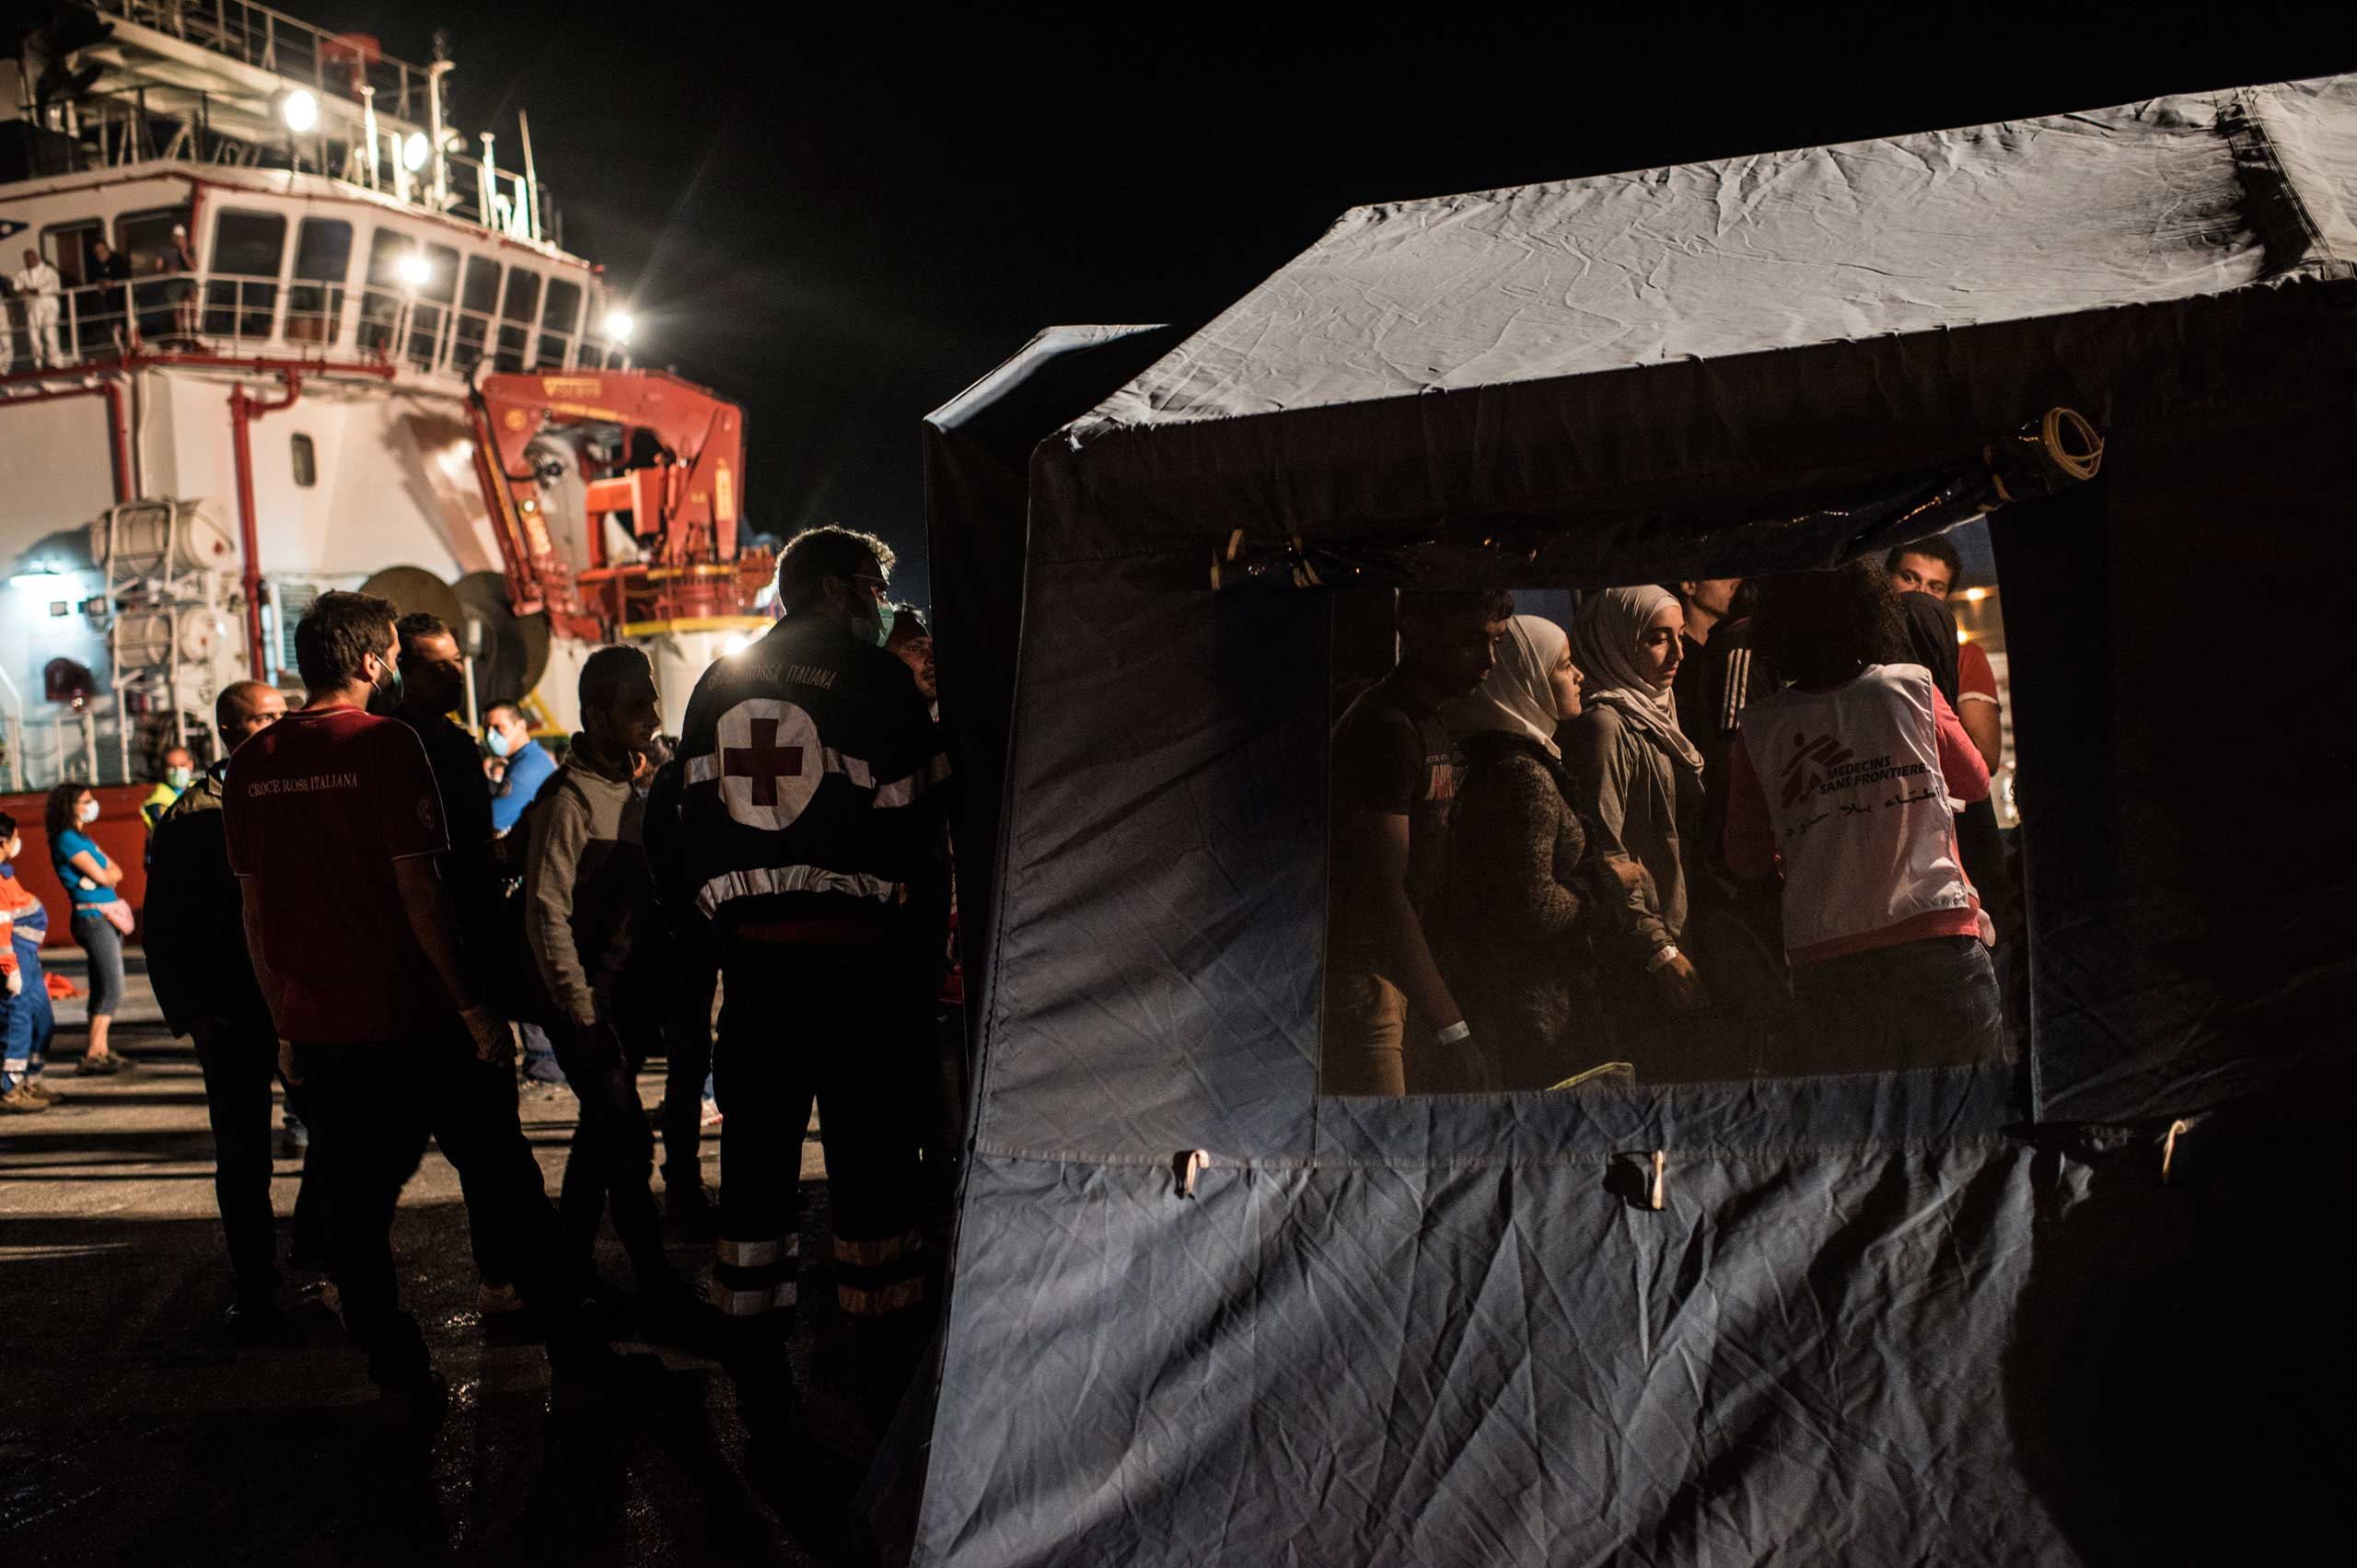 Roughly 250 refugees from Egypt and Syria, among other countries, are checked by Doctors Without Borders as they disembark from an Italian ship, after being intercepted and rescued at sea en route to Italy from Egypt to the port in Pozzallo, Sicily, Italy, in Sept. 2014.